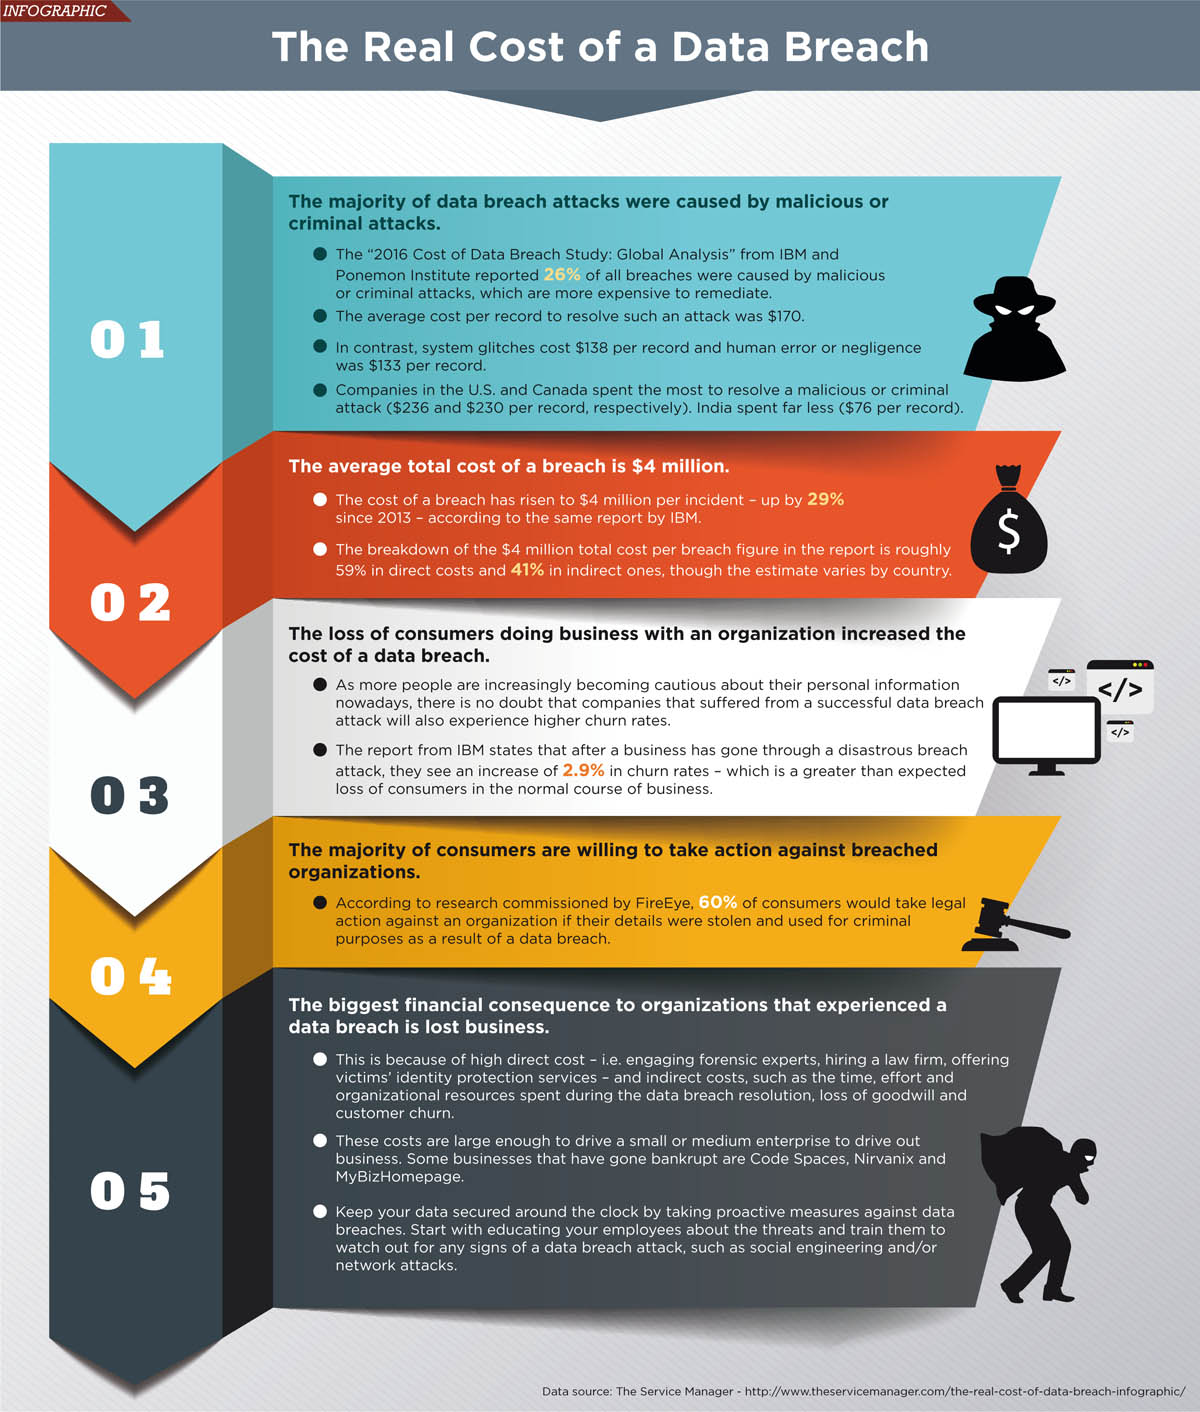 Mcu Credit Union >> The Real Cost of a Data Breach: Infographic   Credit Union Times